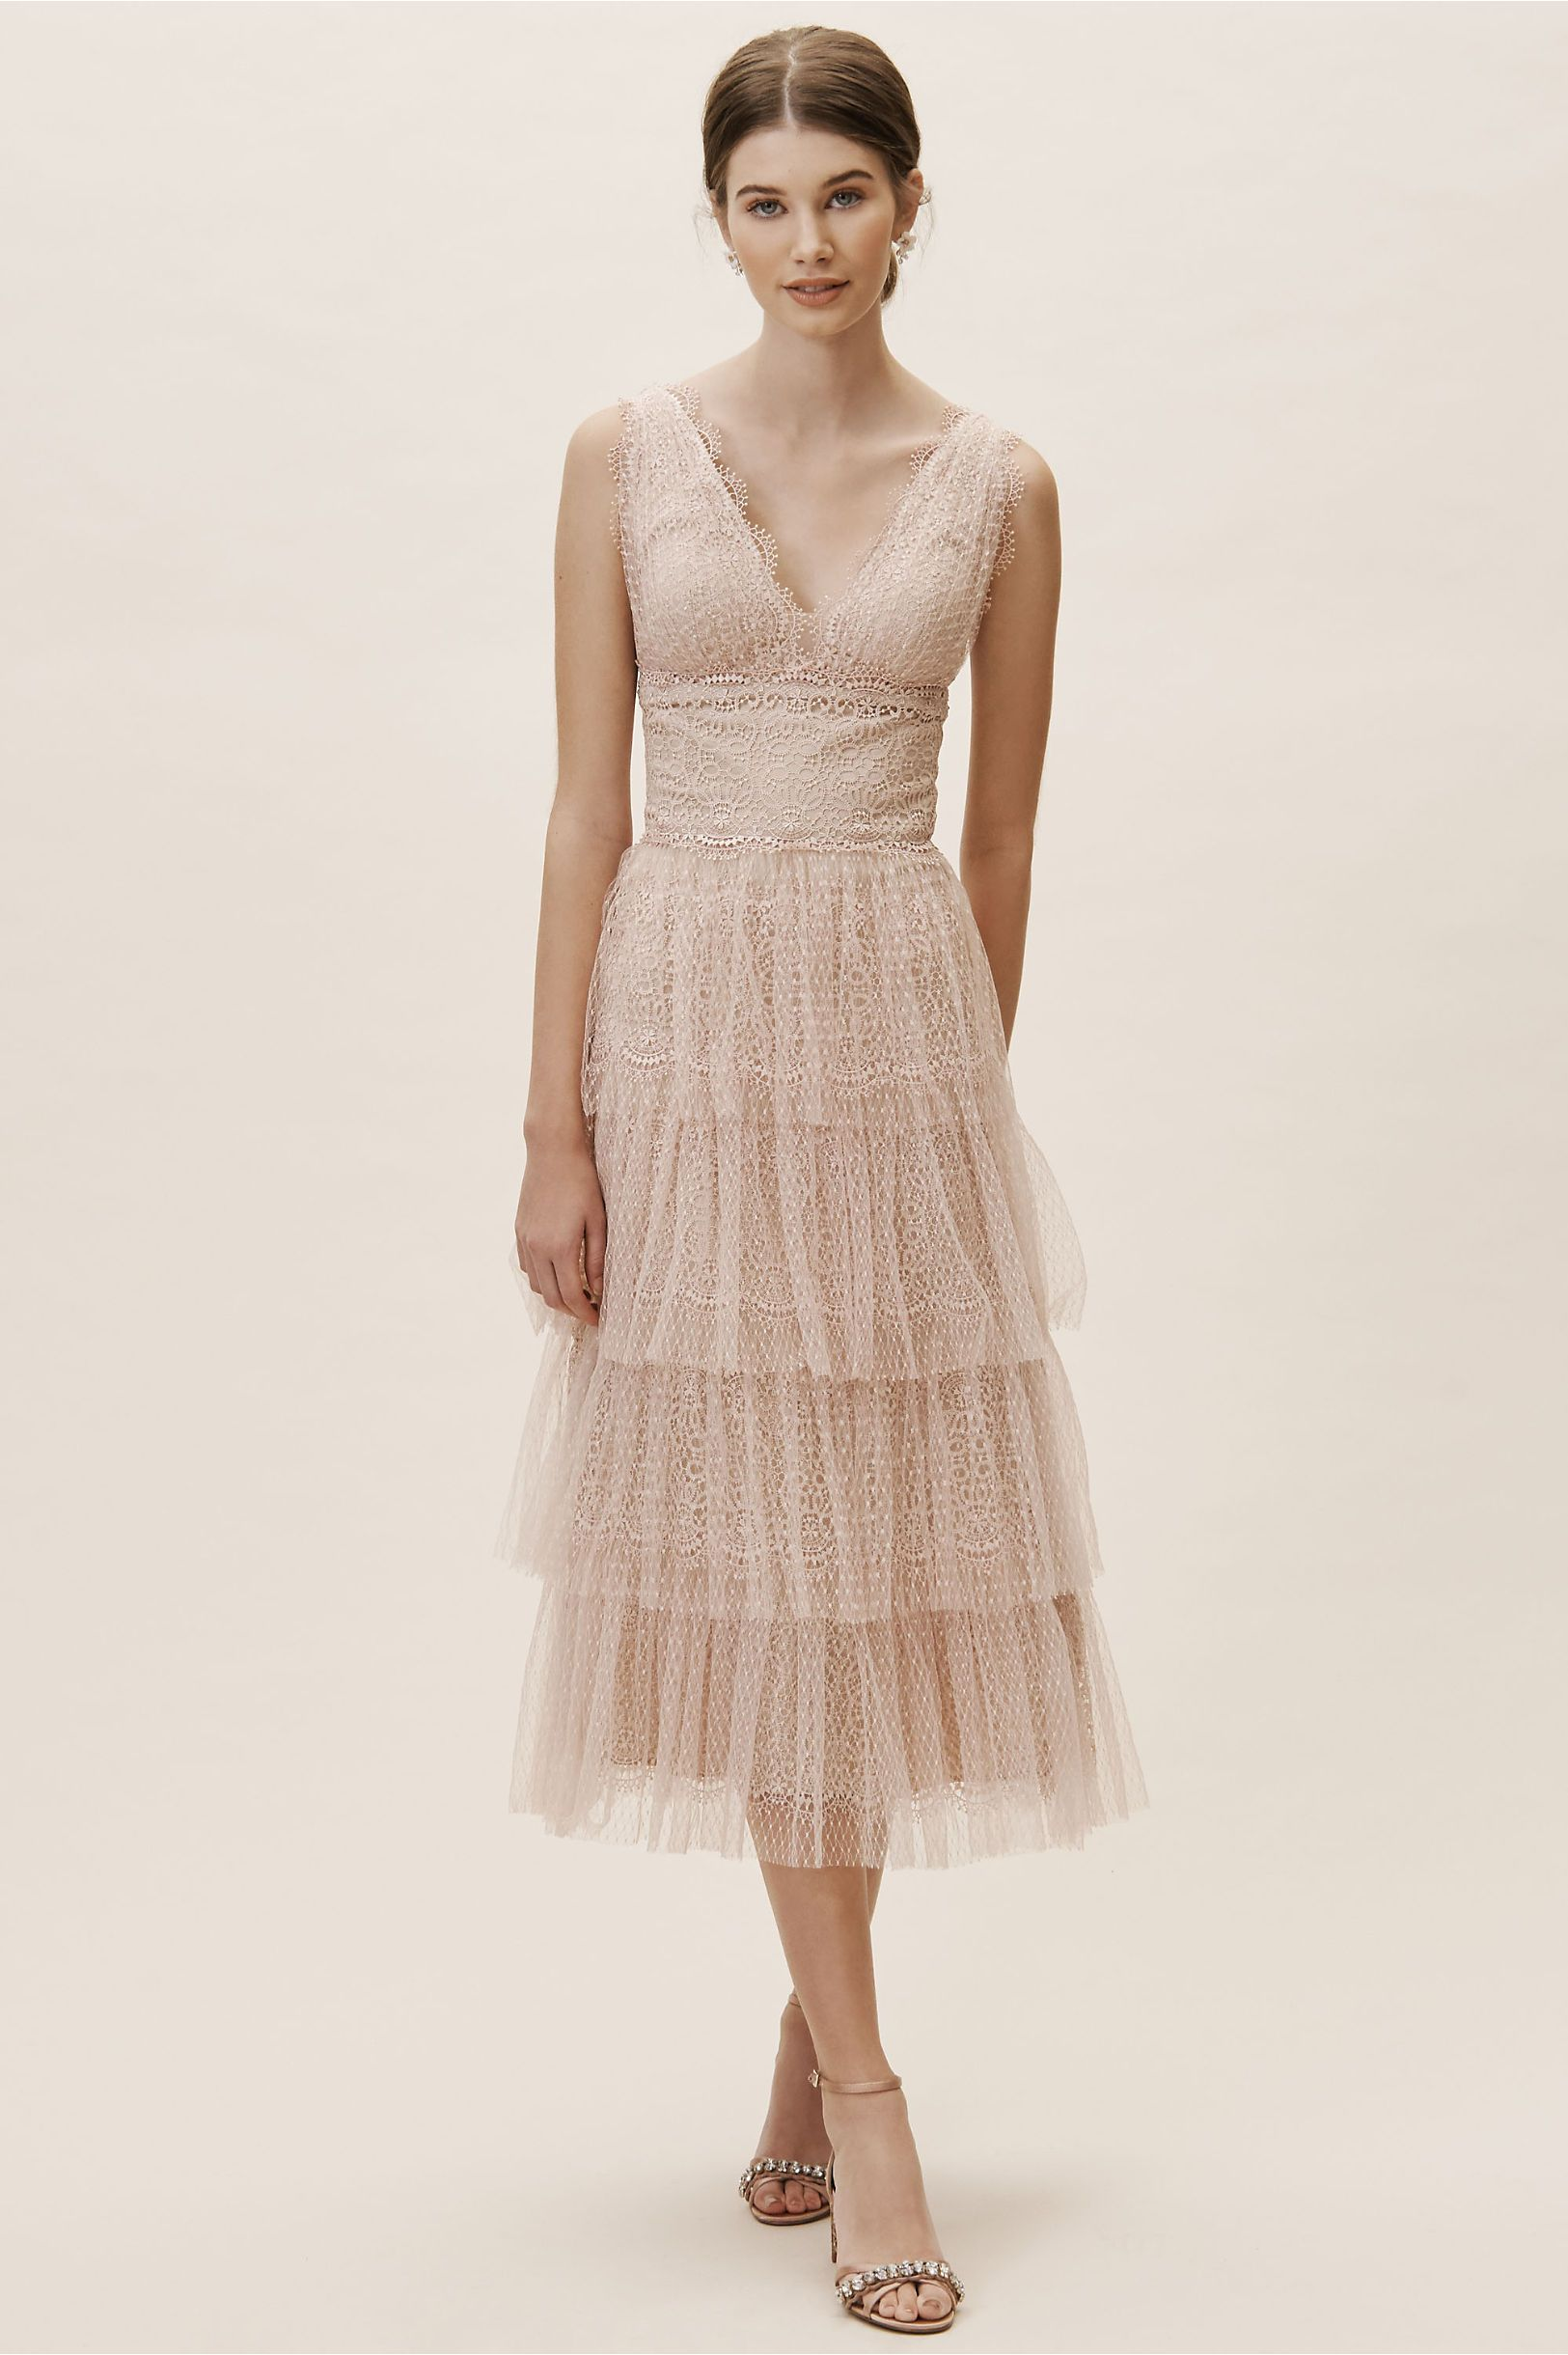 b65492181d00b BHLDN's Catherine Deane Katiana Dress in Blush in 2019 | Products ...